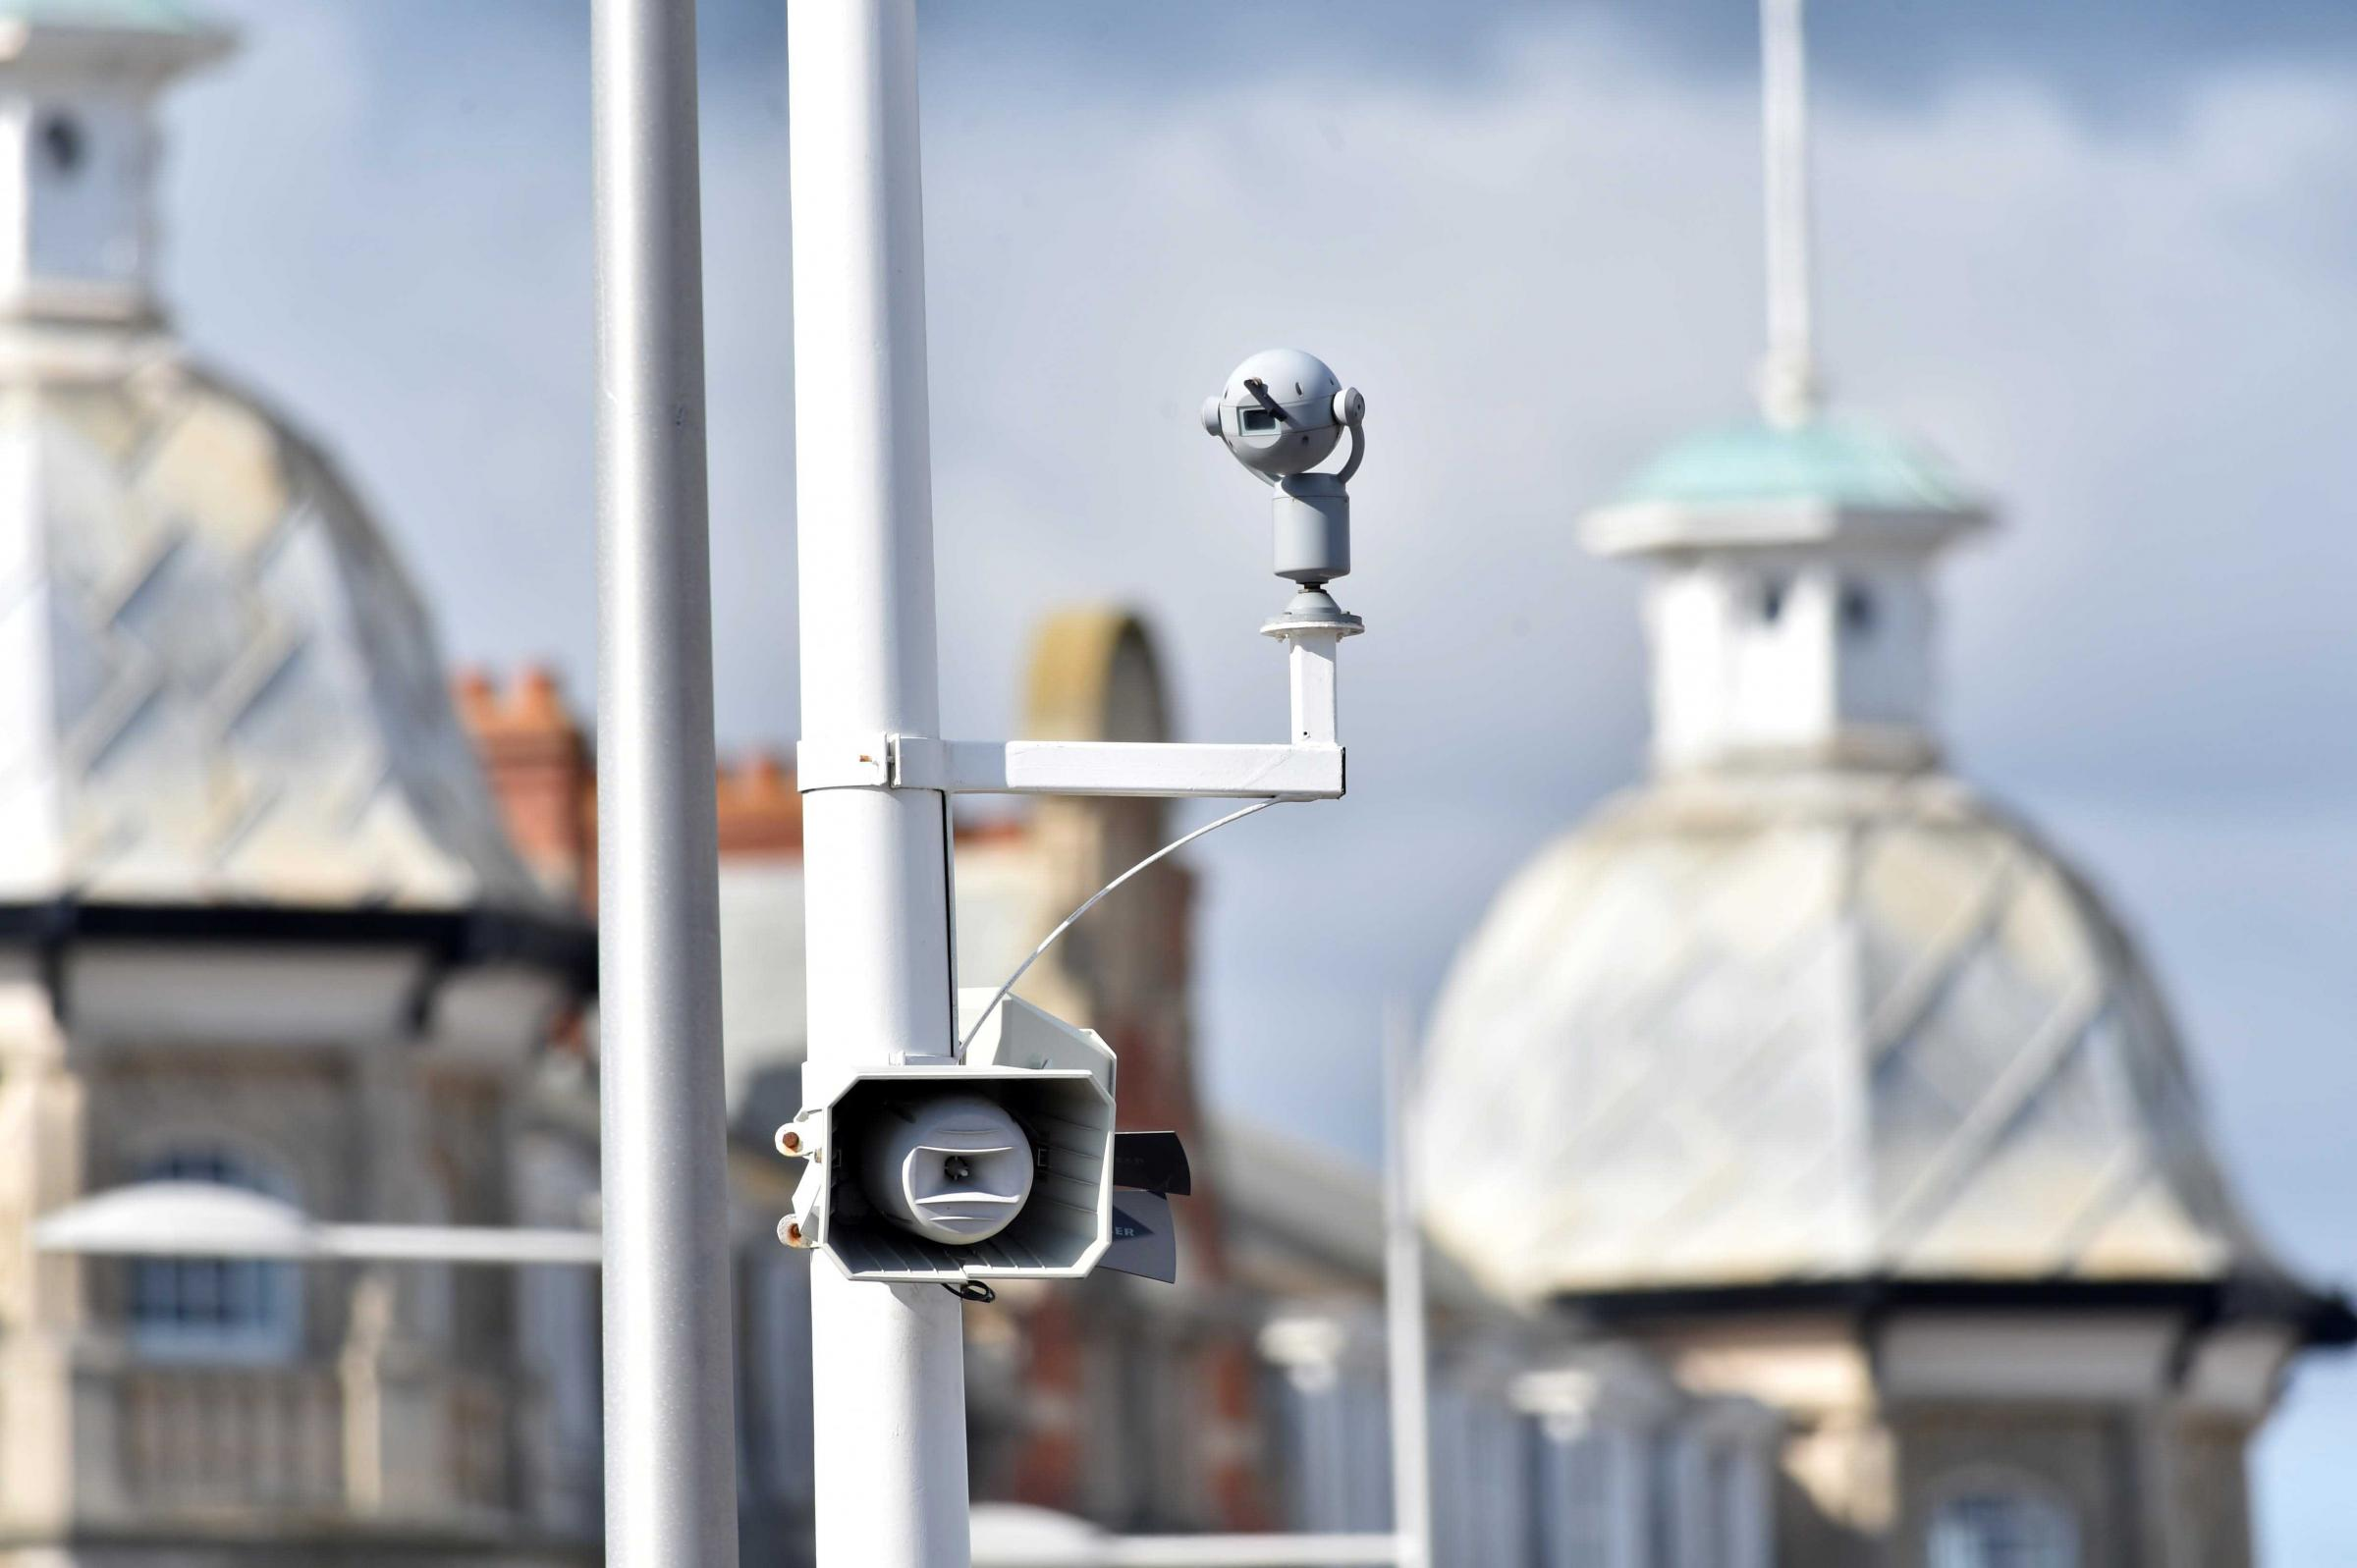 CCTV cameras in Weymouth - Camera on the Esplanade - 020915, Picture GRAHAM HUNT HG13437.